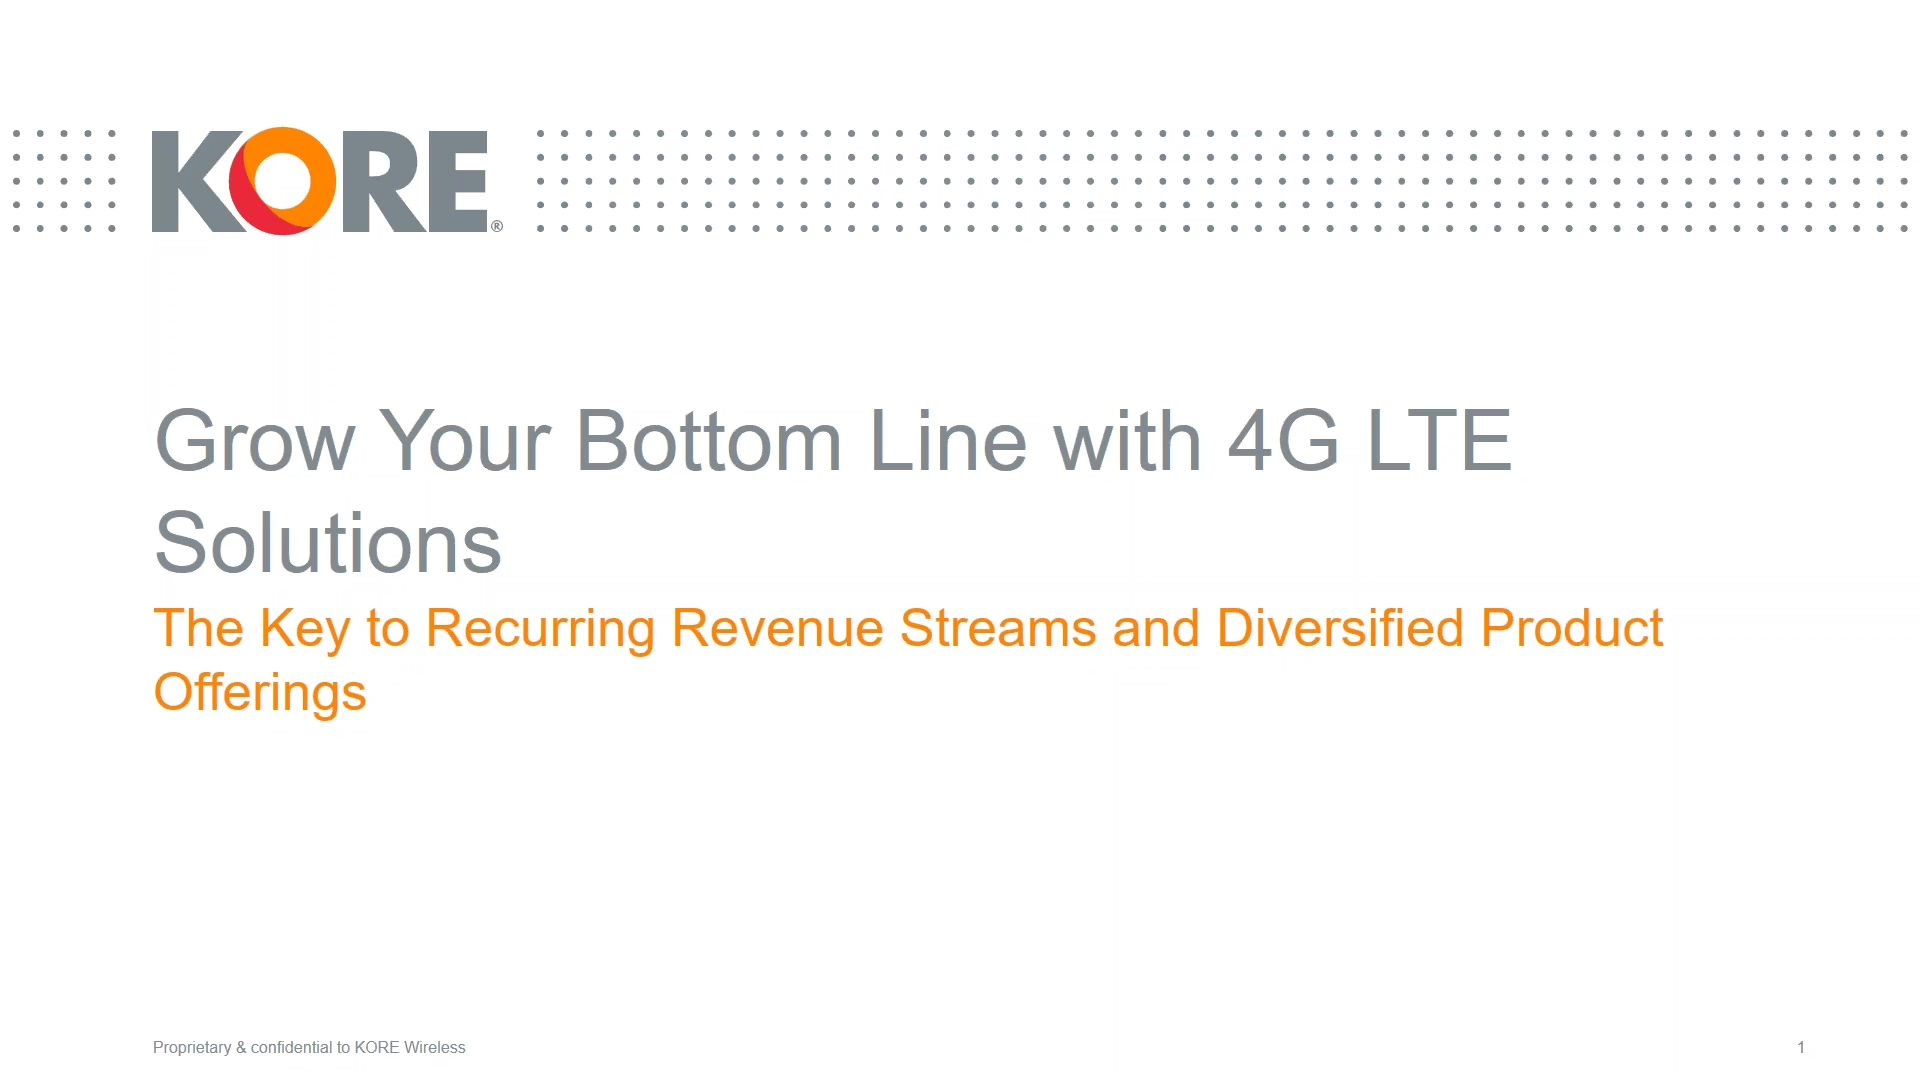 2019-10-09 10.27 Grow Your Bottom Line with 4G LTE